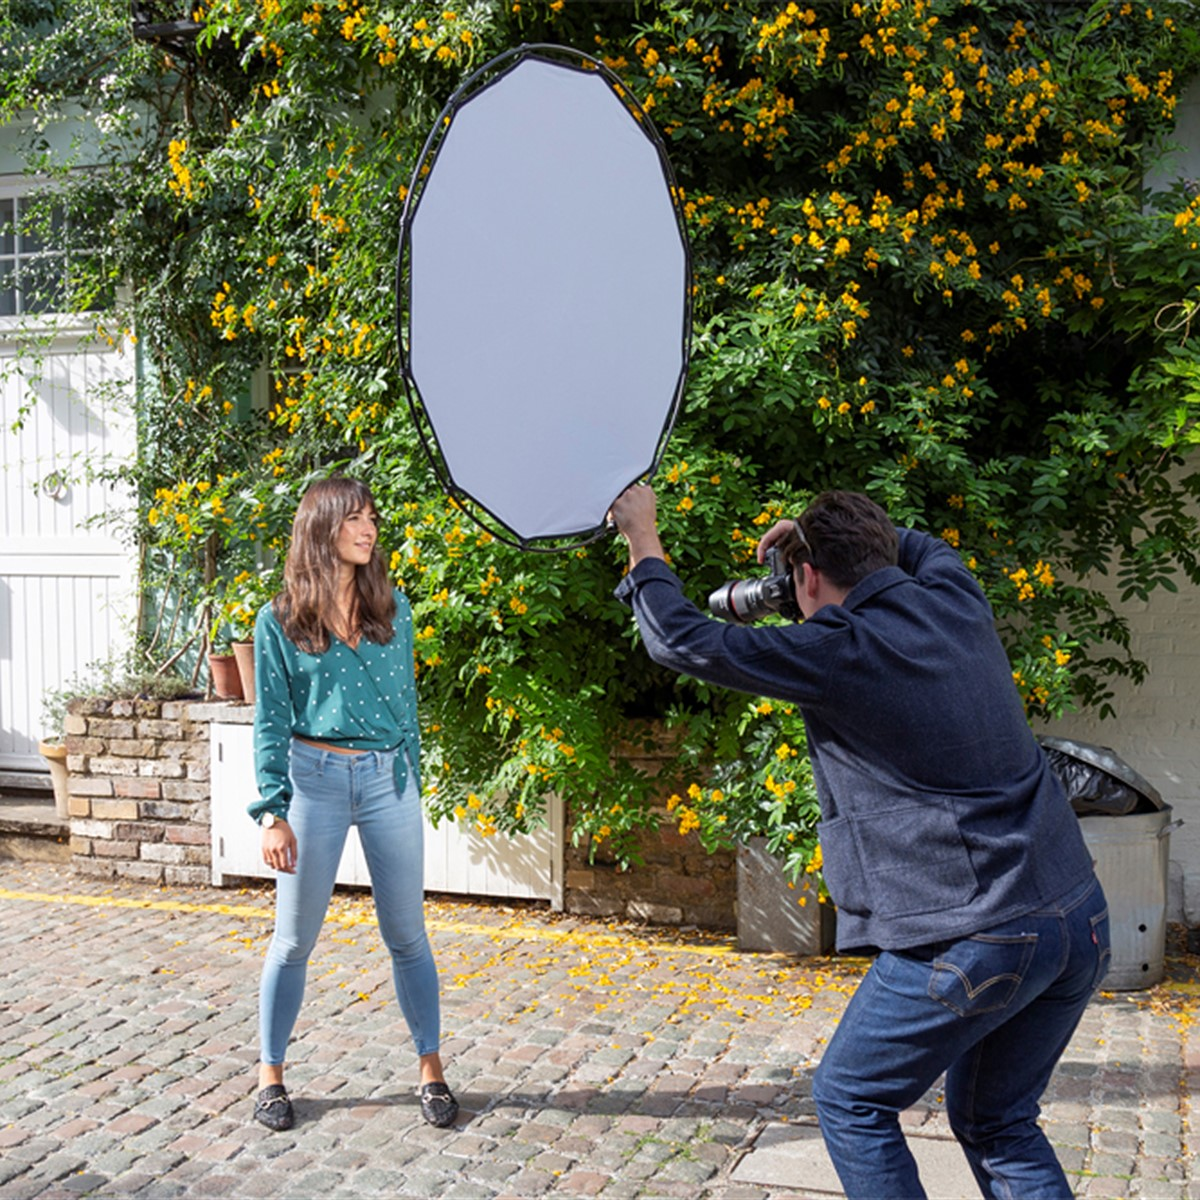 The Lastolite HaloCompact is a new reflector, diffuser with